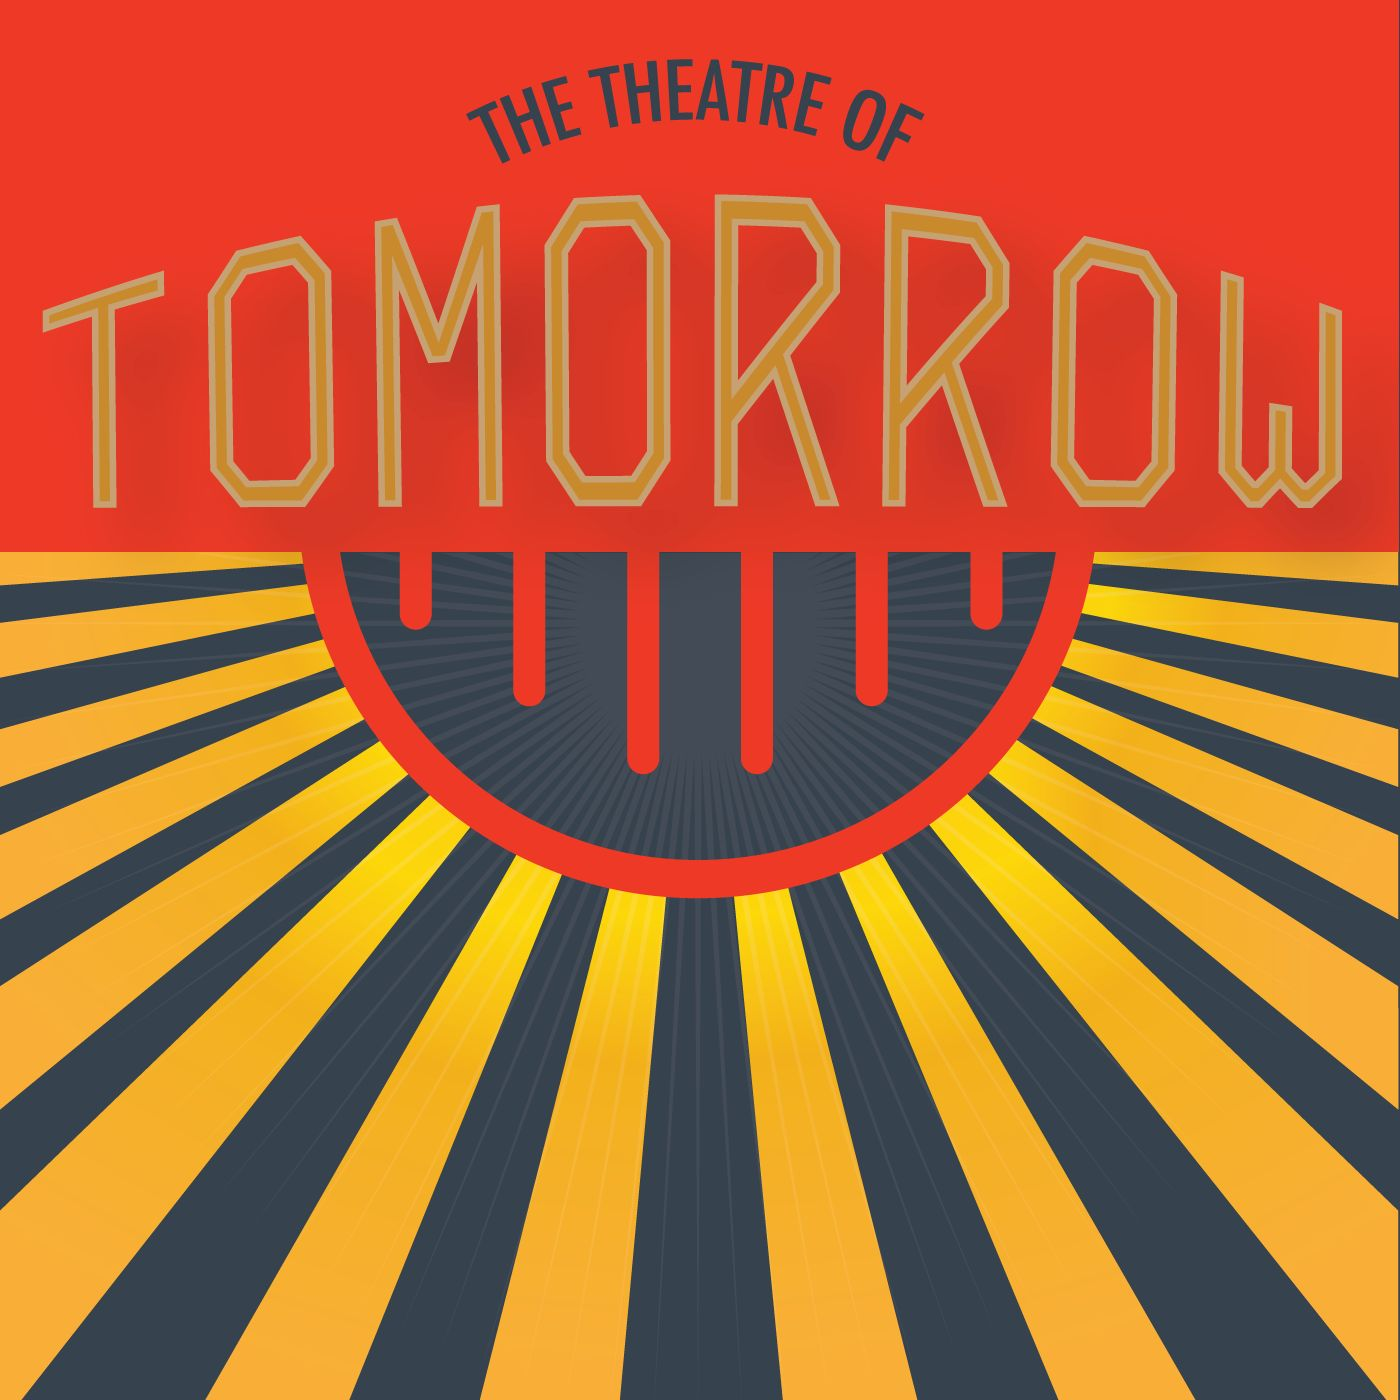 Theatre of Tomorrow